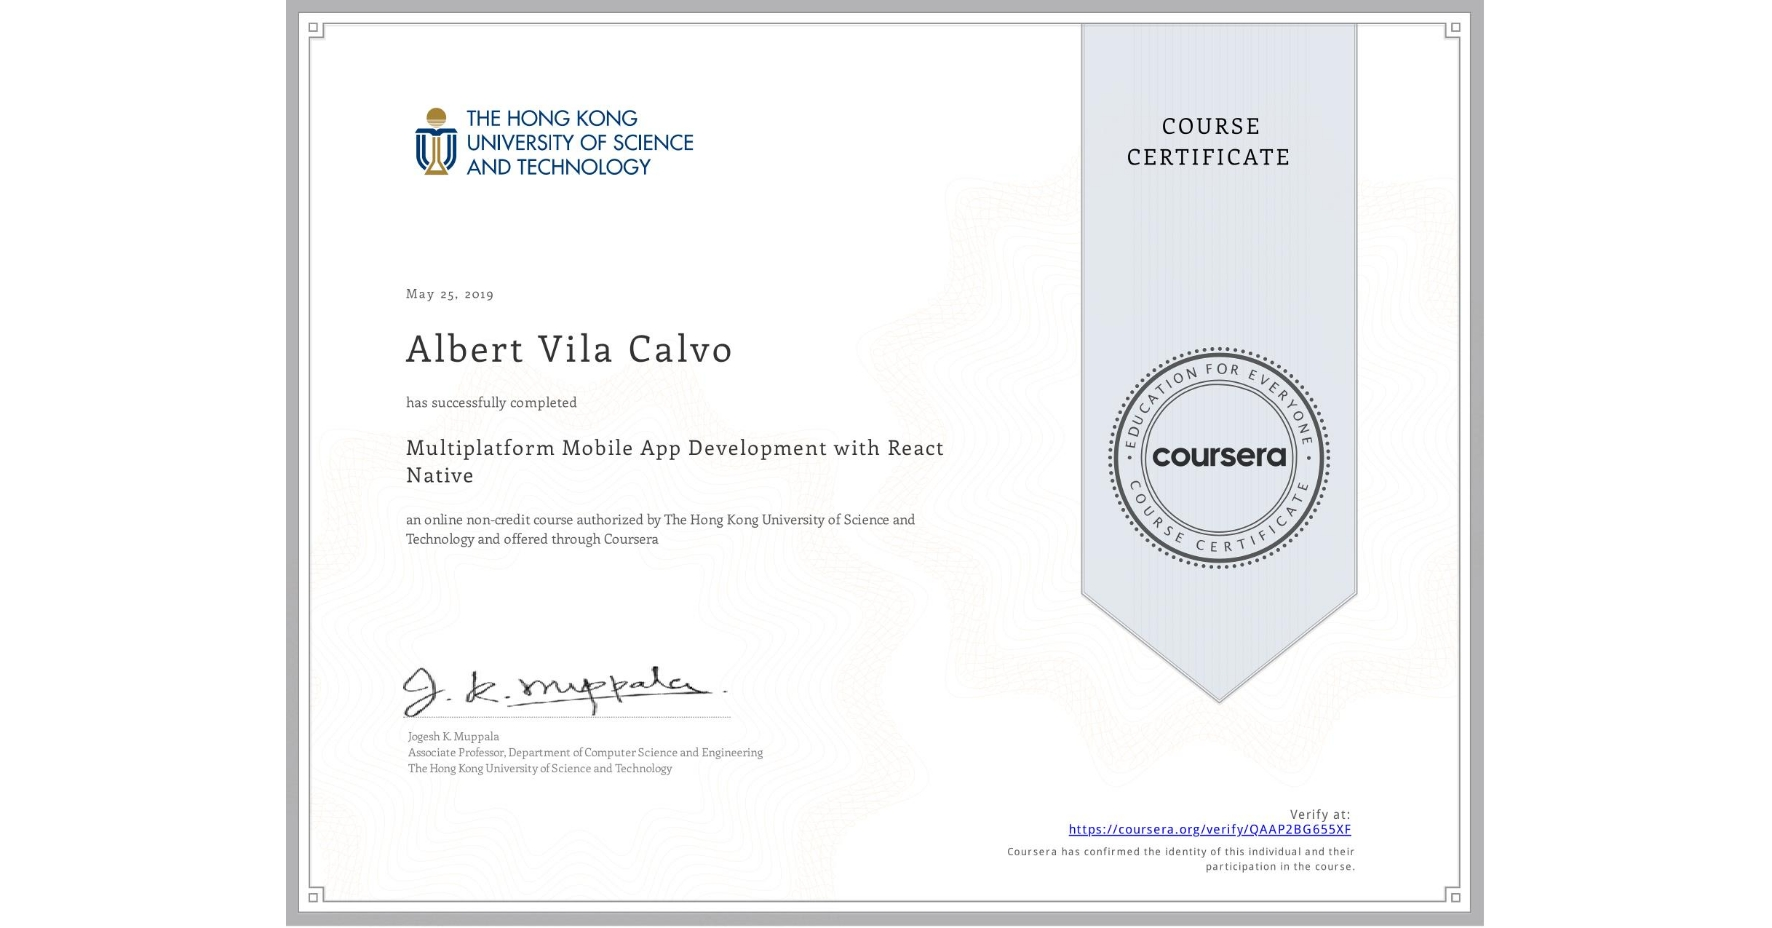 View certificate for Albert Vila Calvo, Multiplatform Mobile App Development with React Native, an online non-credit course authorized by The Hong Kong University of Science and Technology and offered through Coursera